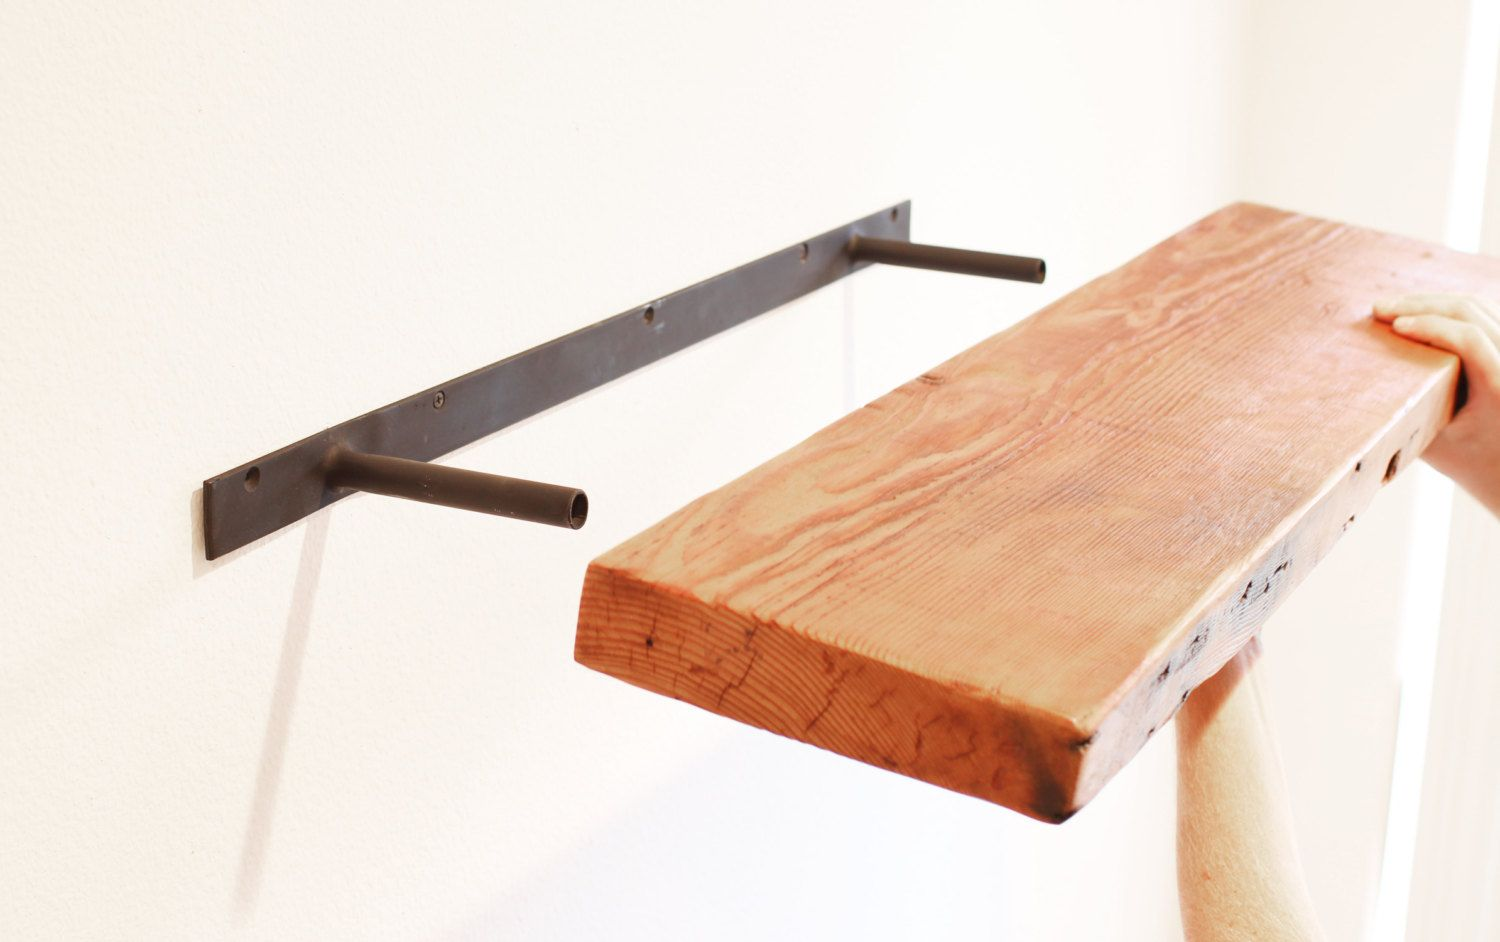 floating shelf brackets steel heavy duty from invisible the original bracket patent pending beware imitations seamlessly support your rad shelving wood bar shelves ikea kallax